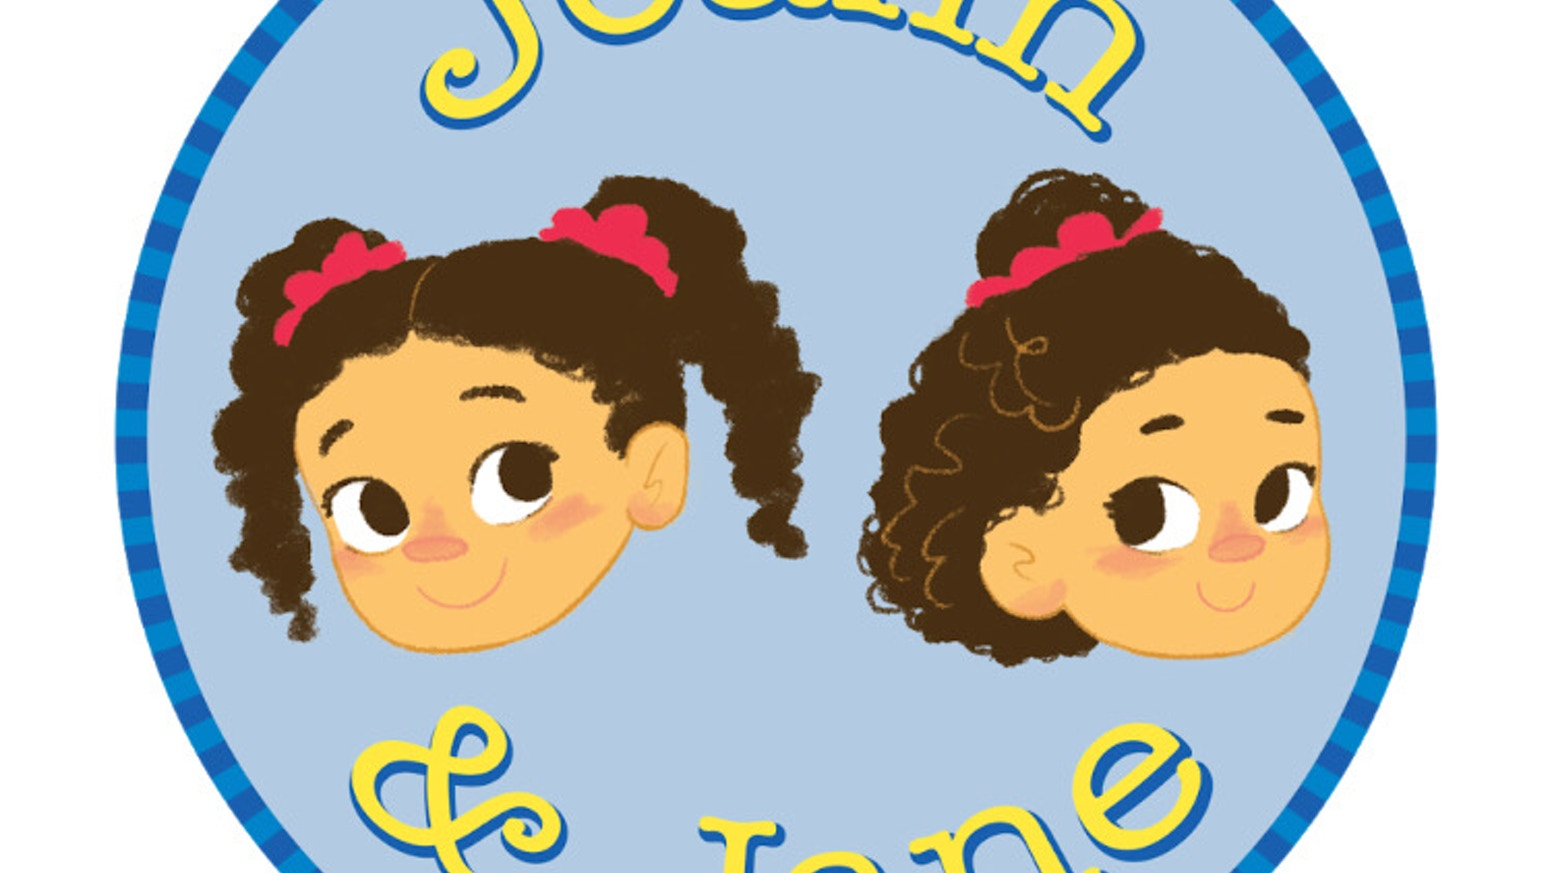 A children's picture book starring two lovable little girls! The first book in the Joann and Jane book series is Joann and Jane: Who Made This Mess? Coming to stores August 2018 Follow us on Facebook, Twitter, and Instagram: @JoannAndJane